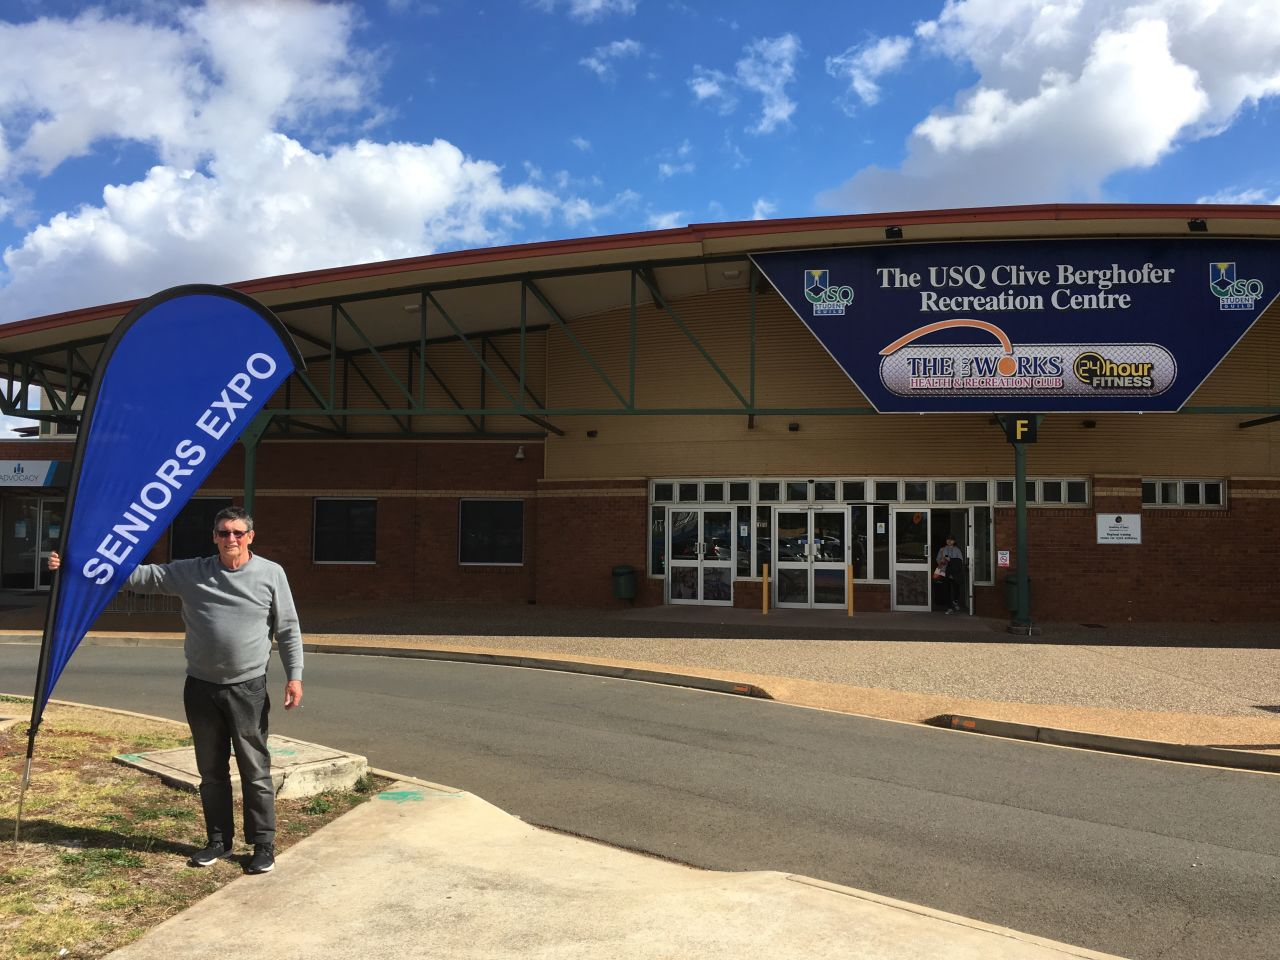 Member Bob Campbell preparing for the seniors expo held at the Clive  Berghofer Recreation Centre on 22nd August.